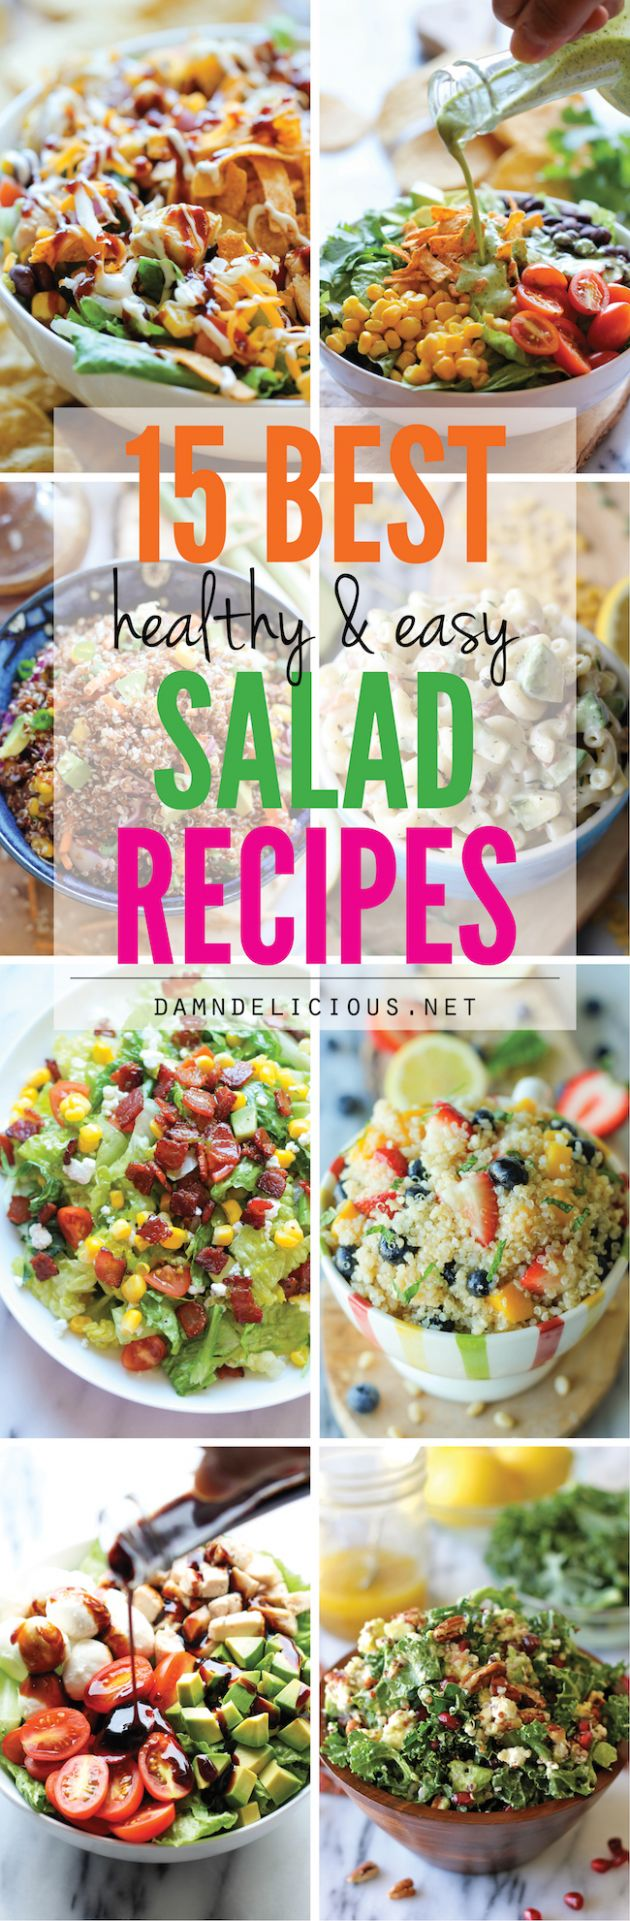 12 Best Healthy and Easy Salad Recipes - Damn Delicious - Salad Recipes Quick And Easy